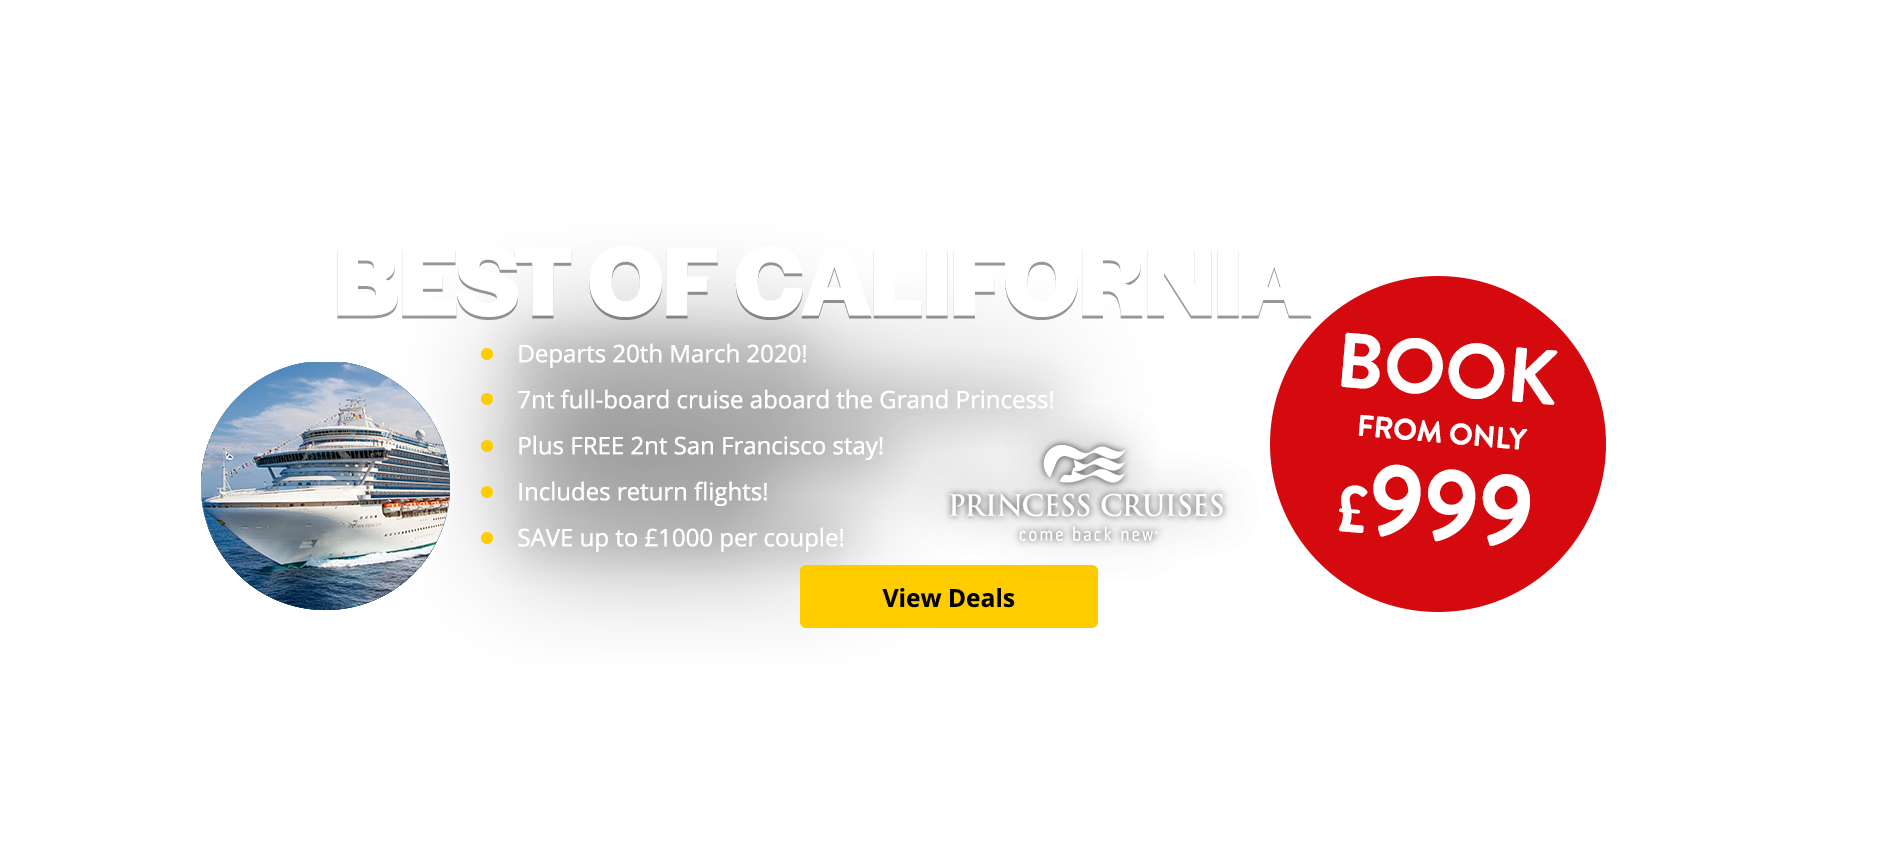 Departs 20th March 2020! 7nt full-board cruise aboard the Grand Princess! Plus FREE 2nt San Francisco stay! Includes return flights! SAVE up to £1000 per couple!